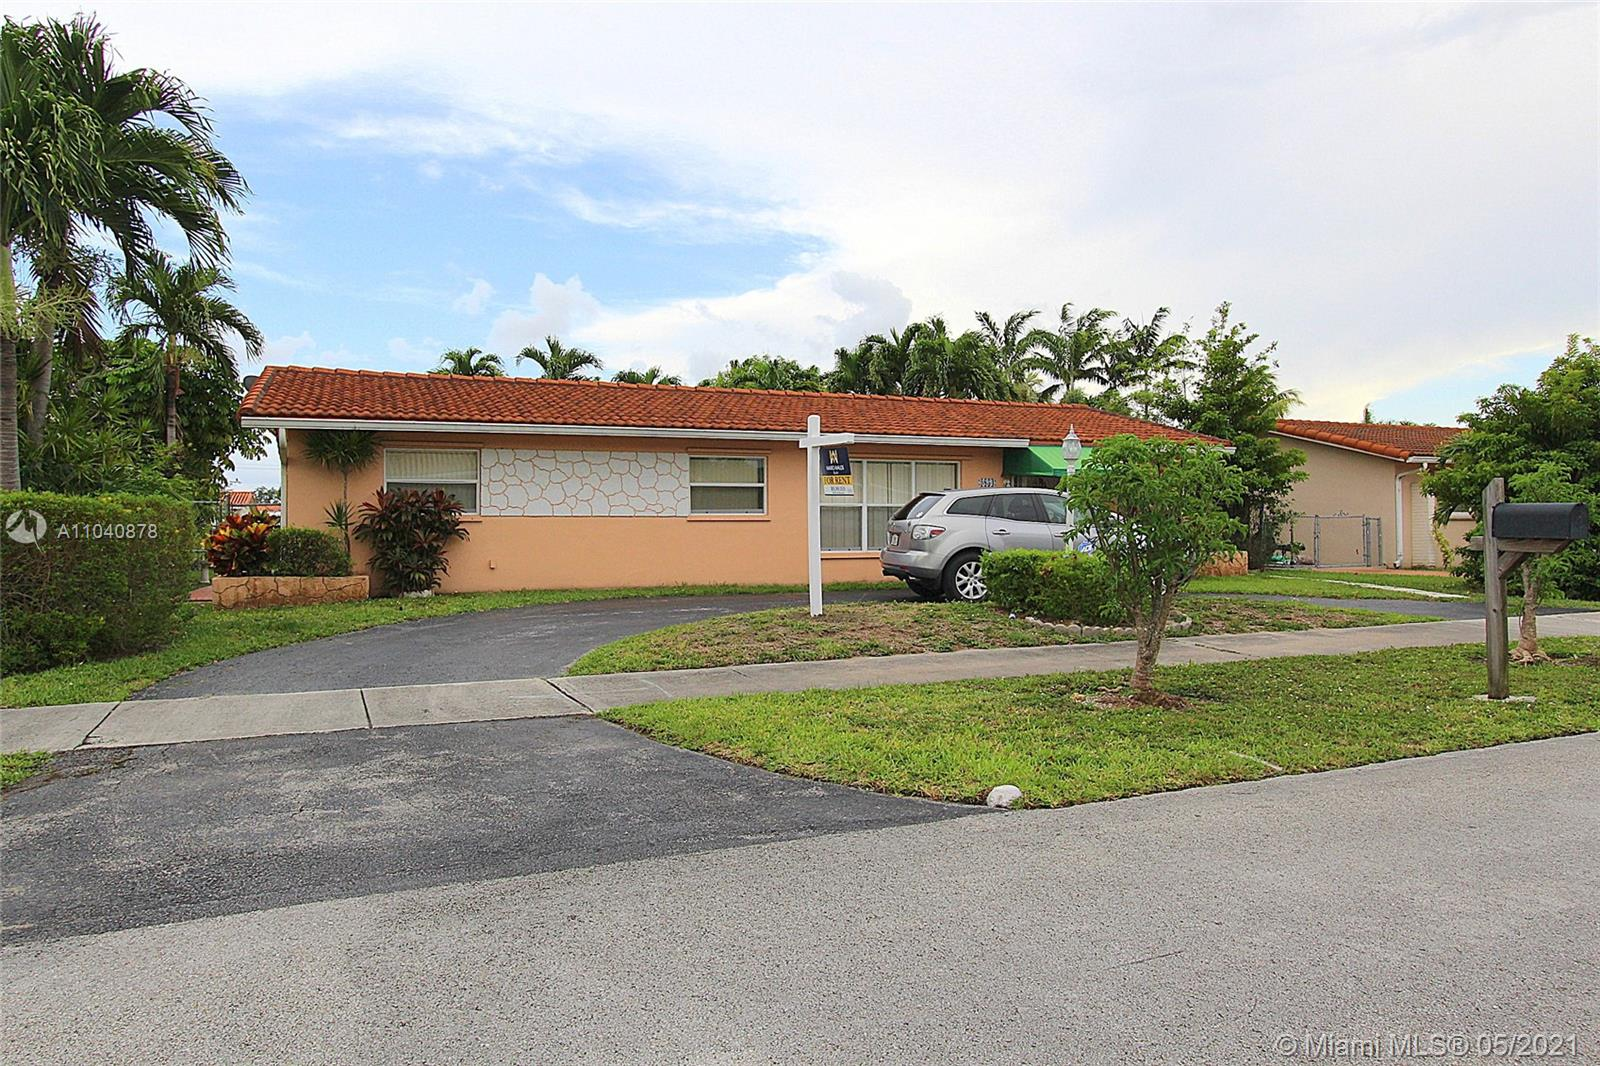 Single-family home minutes away from FIU, the FL turnpike, and the 826 expressway. Features tile flooring throughout the home. Open kitchen layout overlooking the family room. Spacious laundry room inside home. Spacious yard with shed.